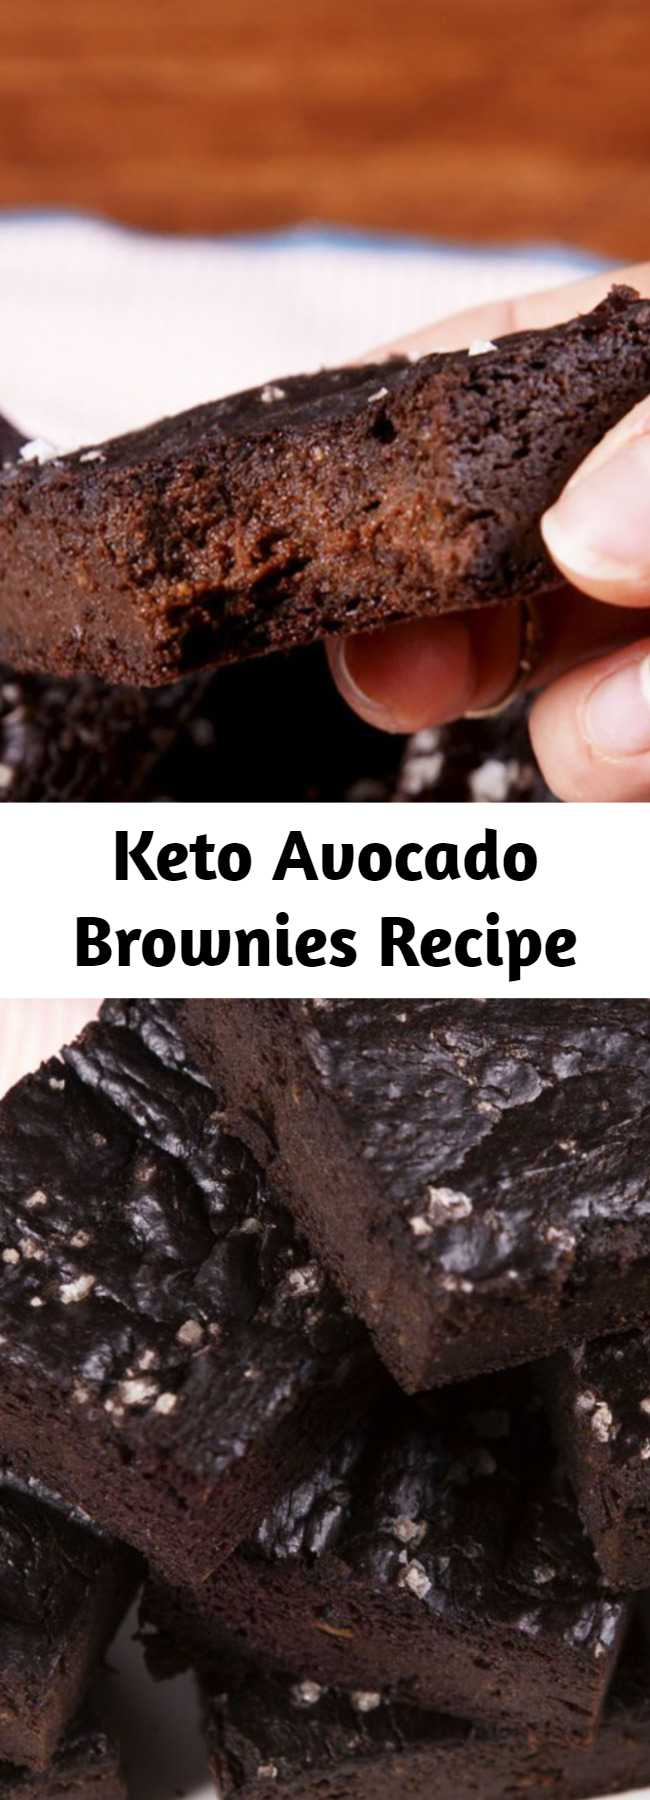 Keto Avocado Brownies Recipe - Who says you can't eat brownies when you're on the keto diet?! These keto brownies are the best. When the chocolate craving is strong. #food #easyrecipe #desserts #keto #healthyeating